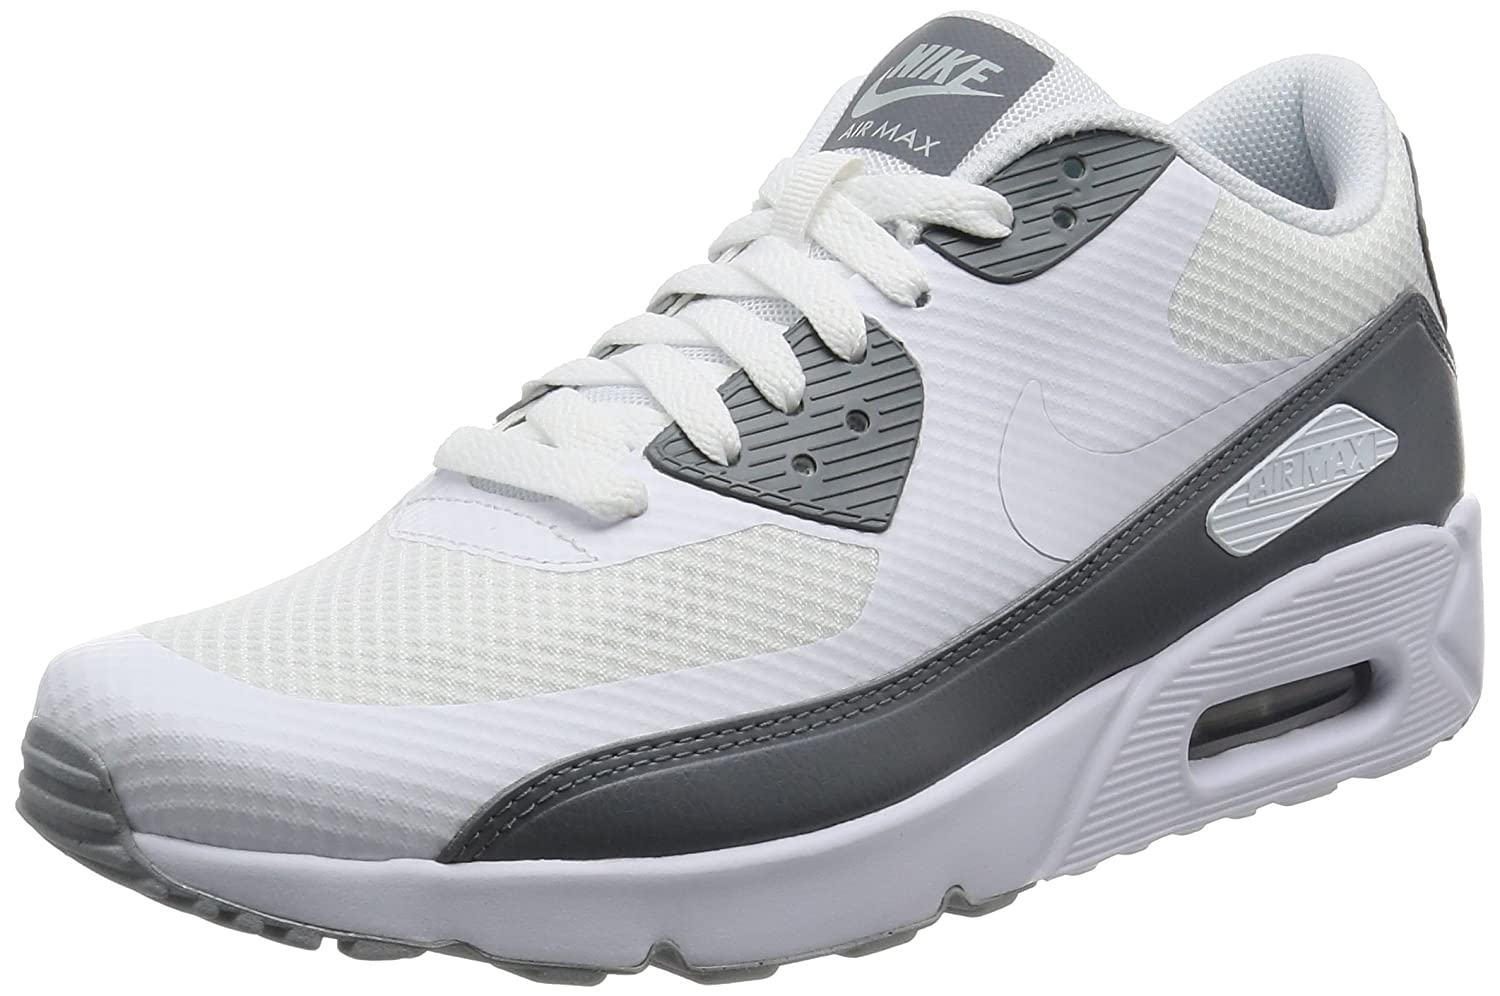 low priced 0e64f 20f57 NIKE Men's Air Max 90 Ultra 2.0 Essential, White/White-Cool Grey, 9 M US